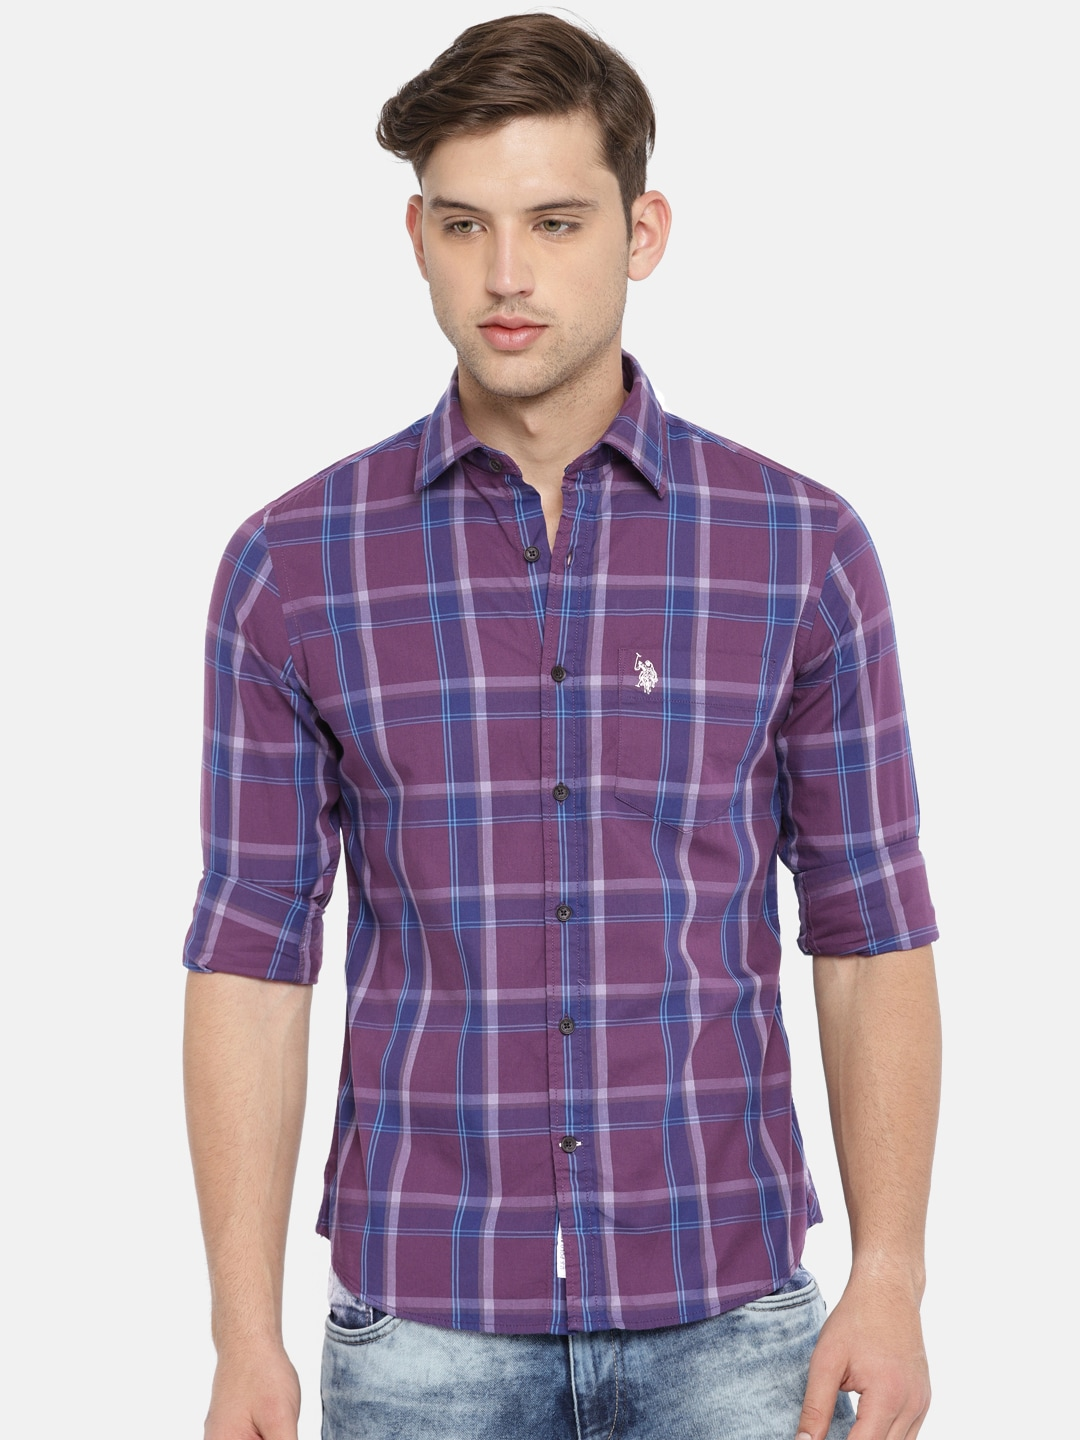 Shirt Casual Purpleamp; U sPolo AssnMen Checked Tailored Blue Fit eBCrdxo